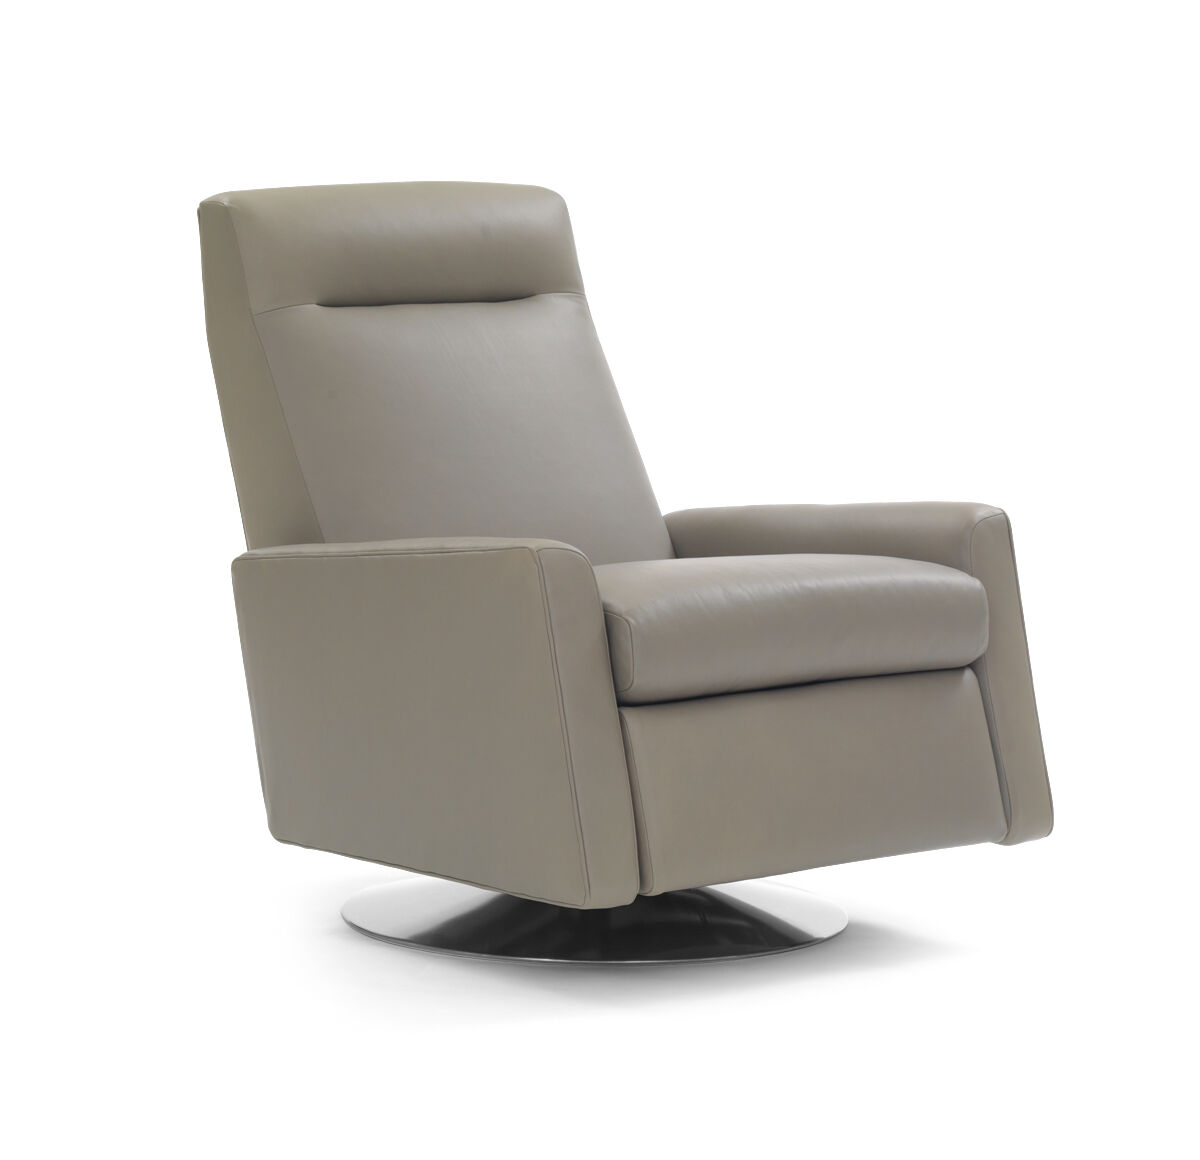 TILTON LEATHER RECLINER, VANCE   DRIFTWOOD, Hi Res